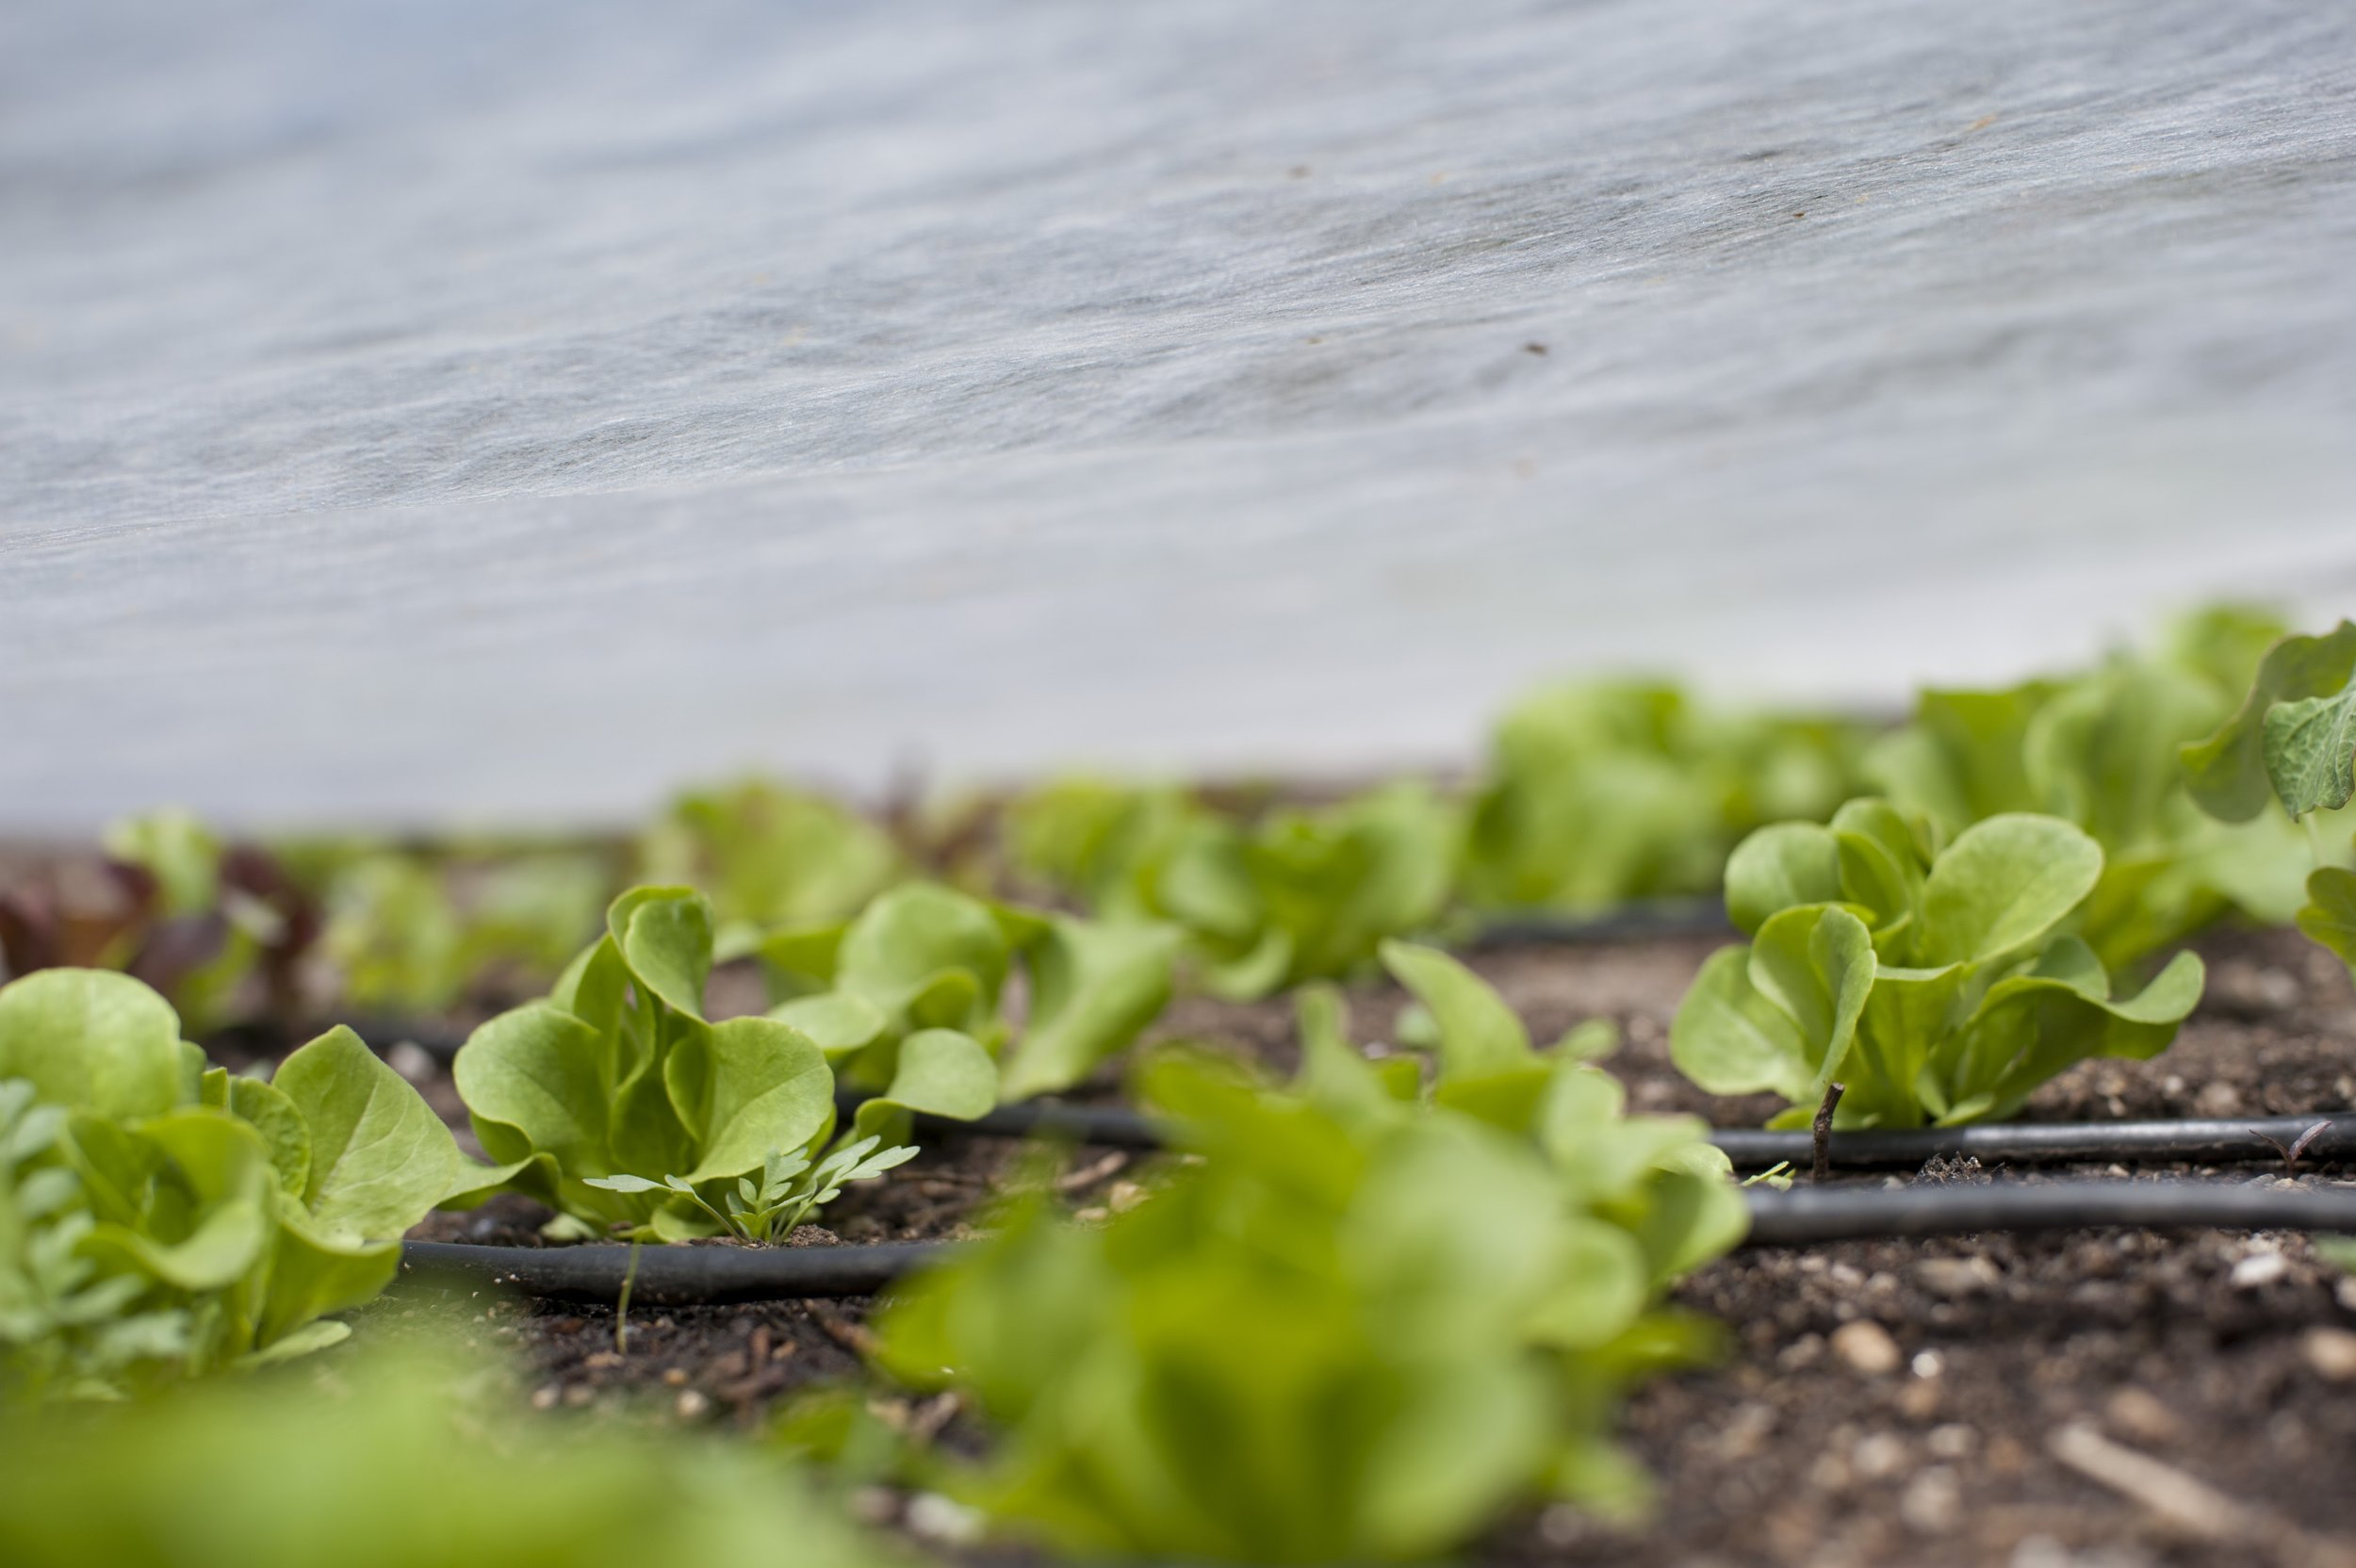 Lettuce plants protected under row cover in a raised bed.